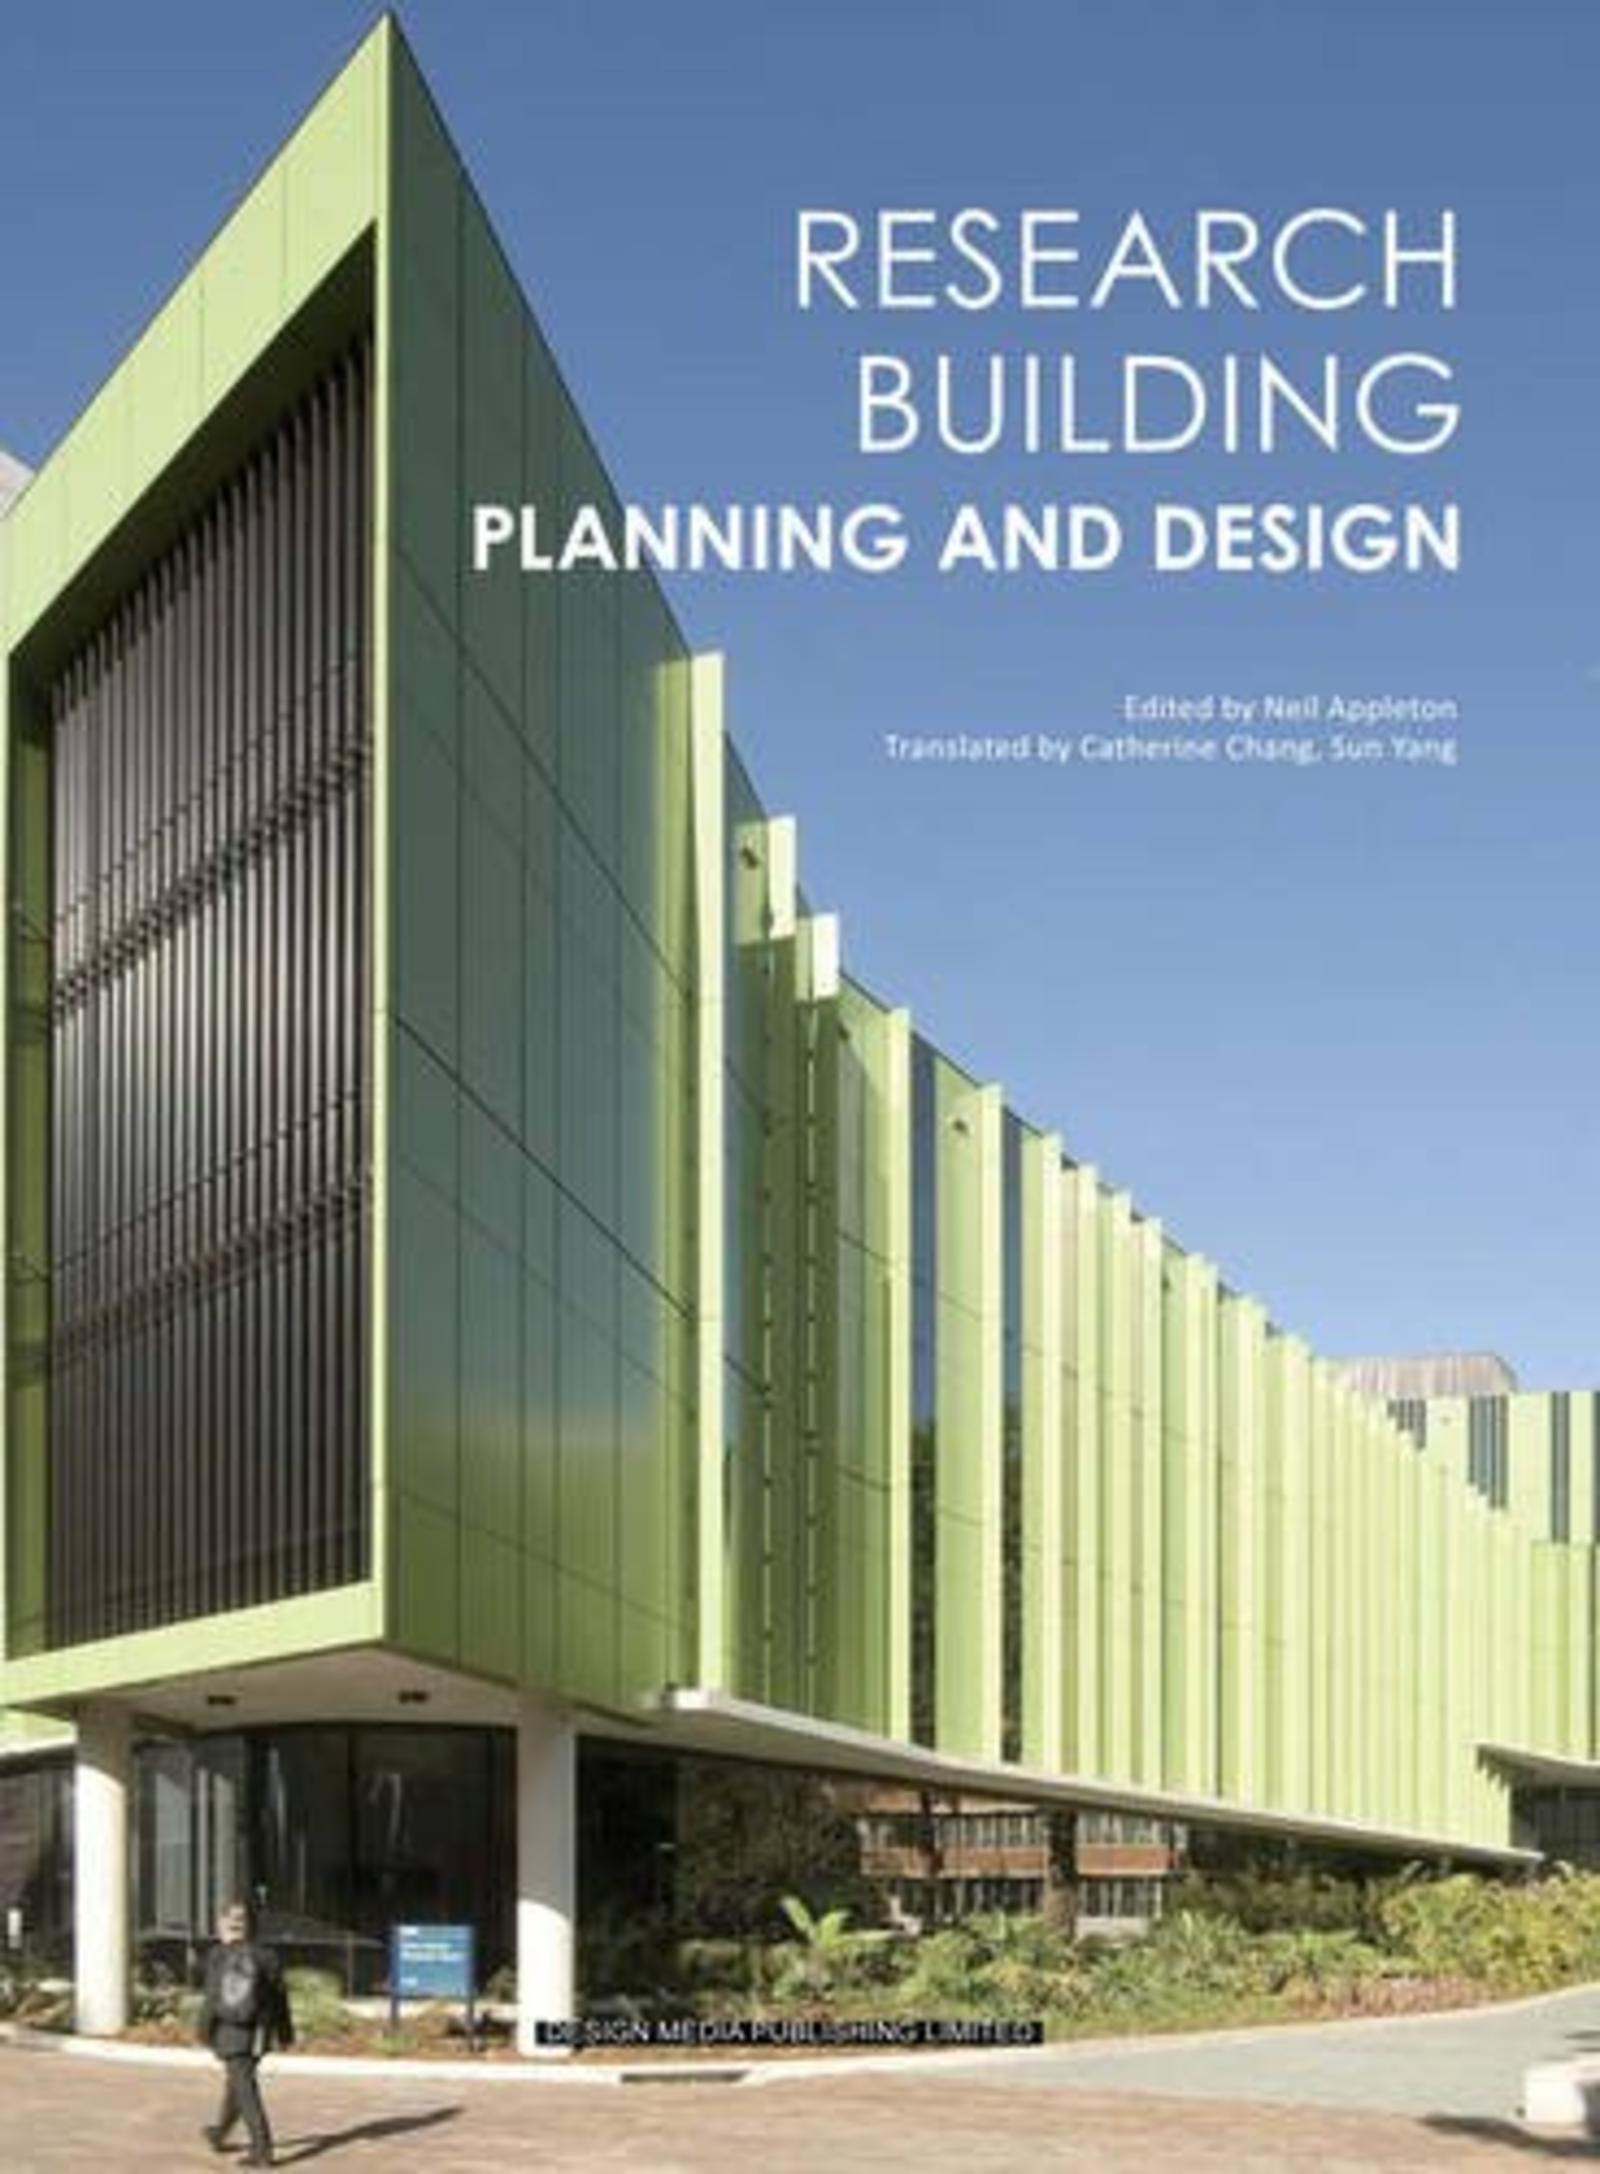 RESEARCH BUILDING PLANNING AND DESIGN - PLANNING AND DESIGN.